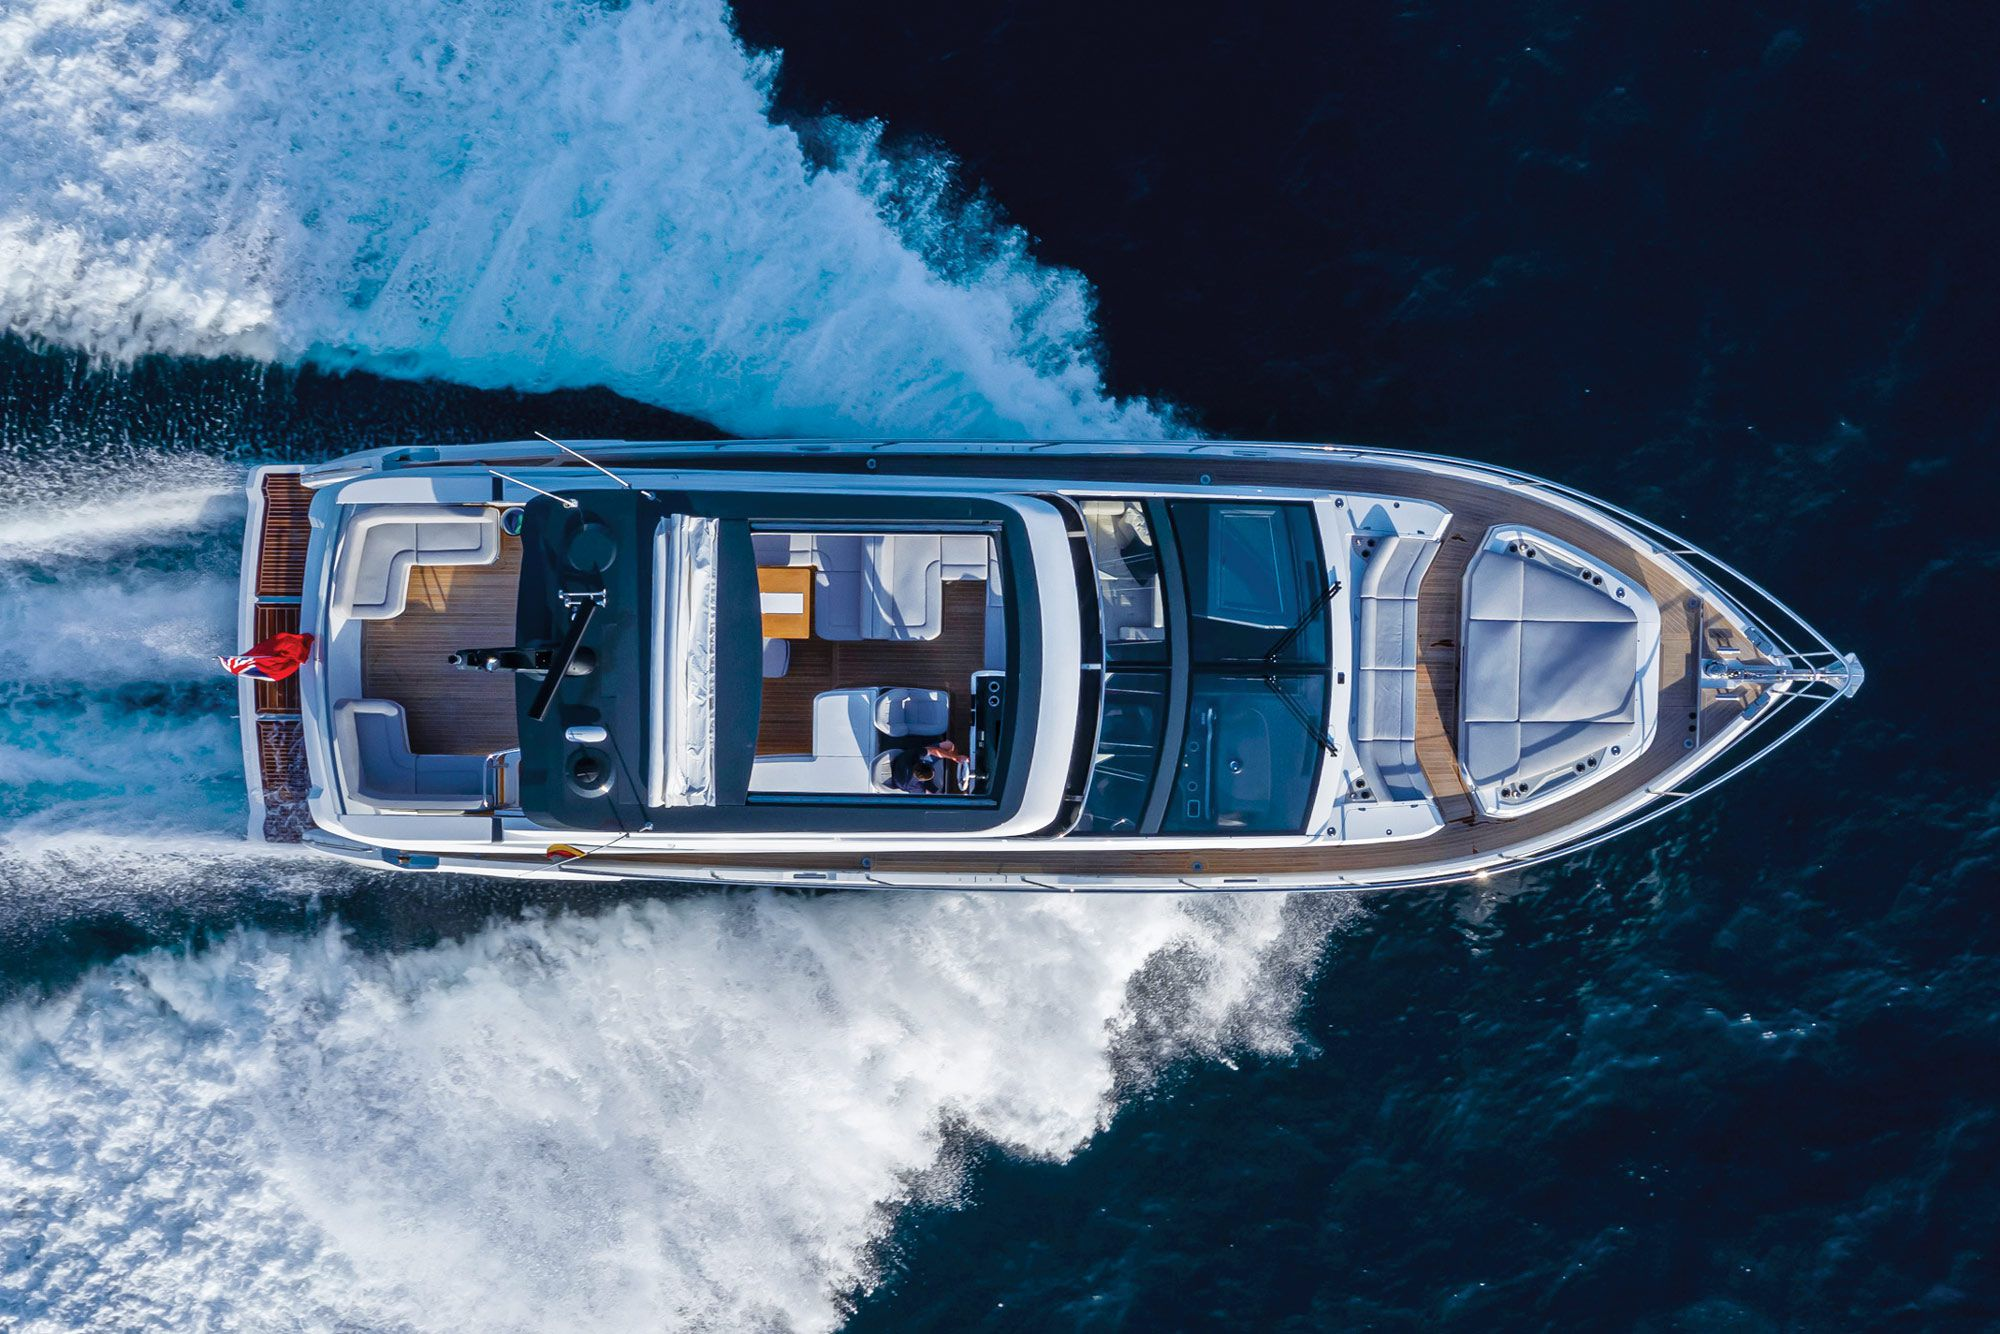 This bird's-eye view illustrates the three well-appointed alfresco zones found on the Pearl 62.